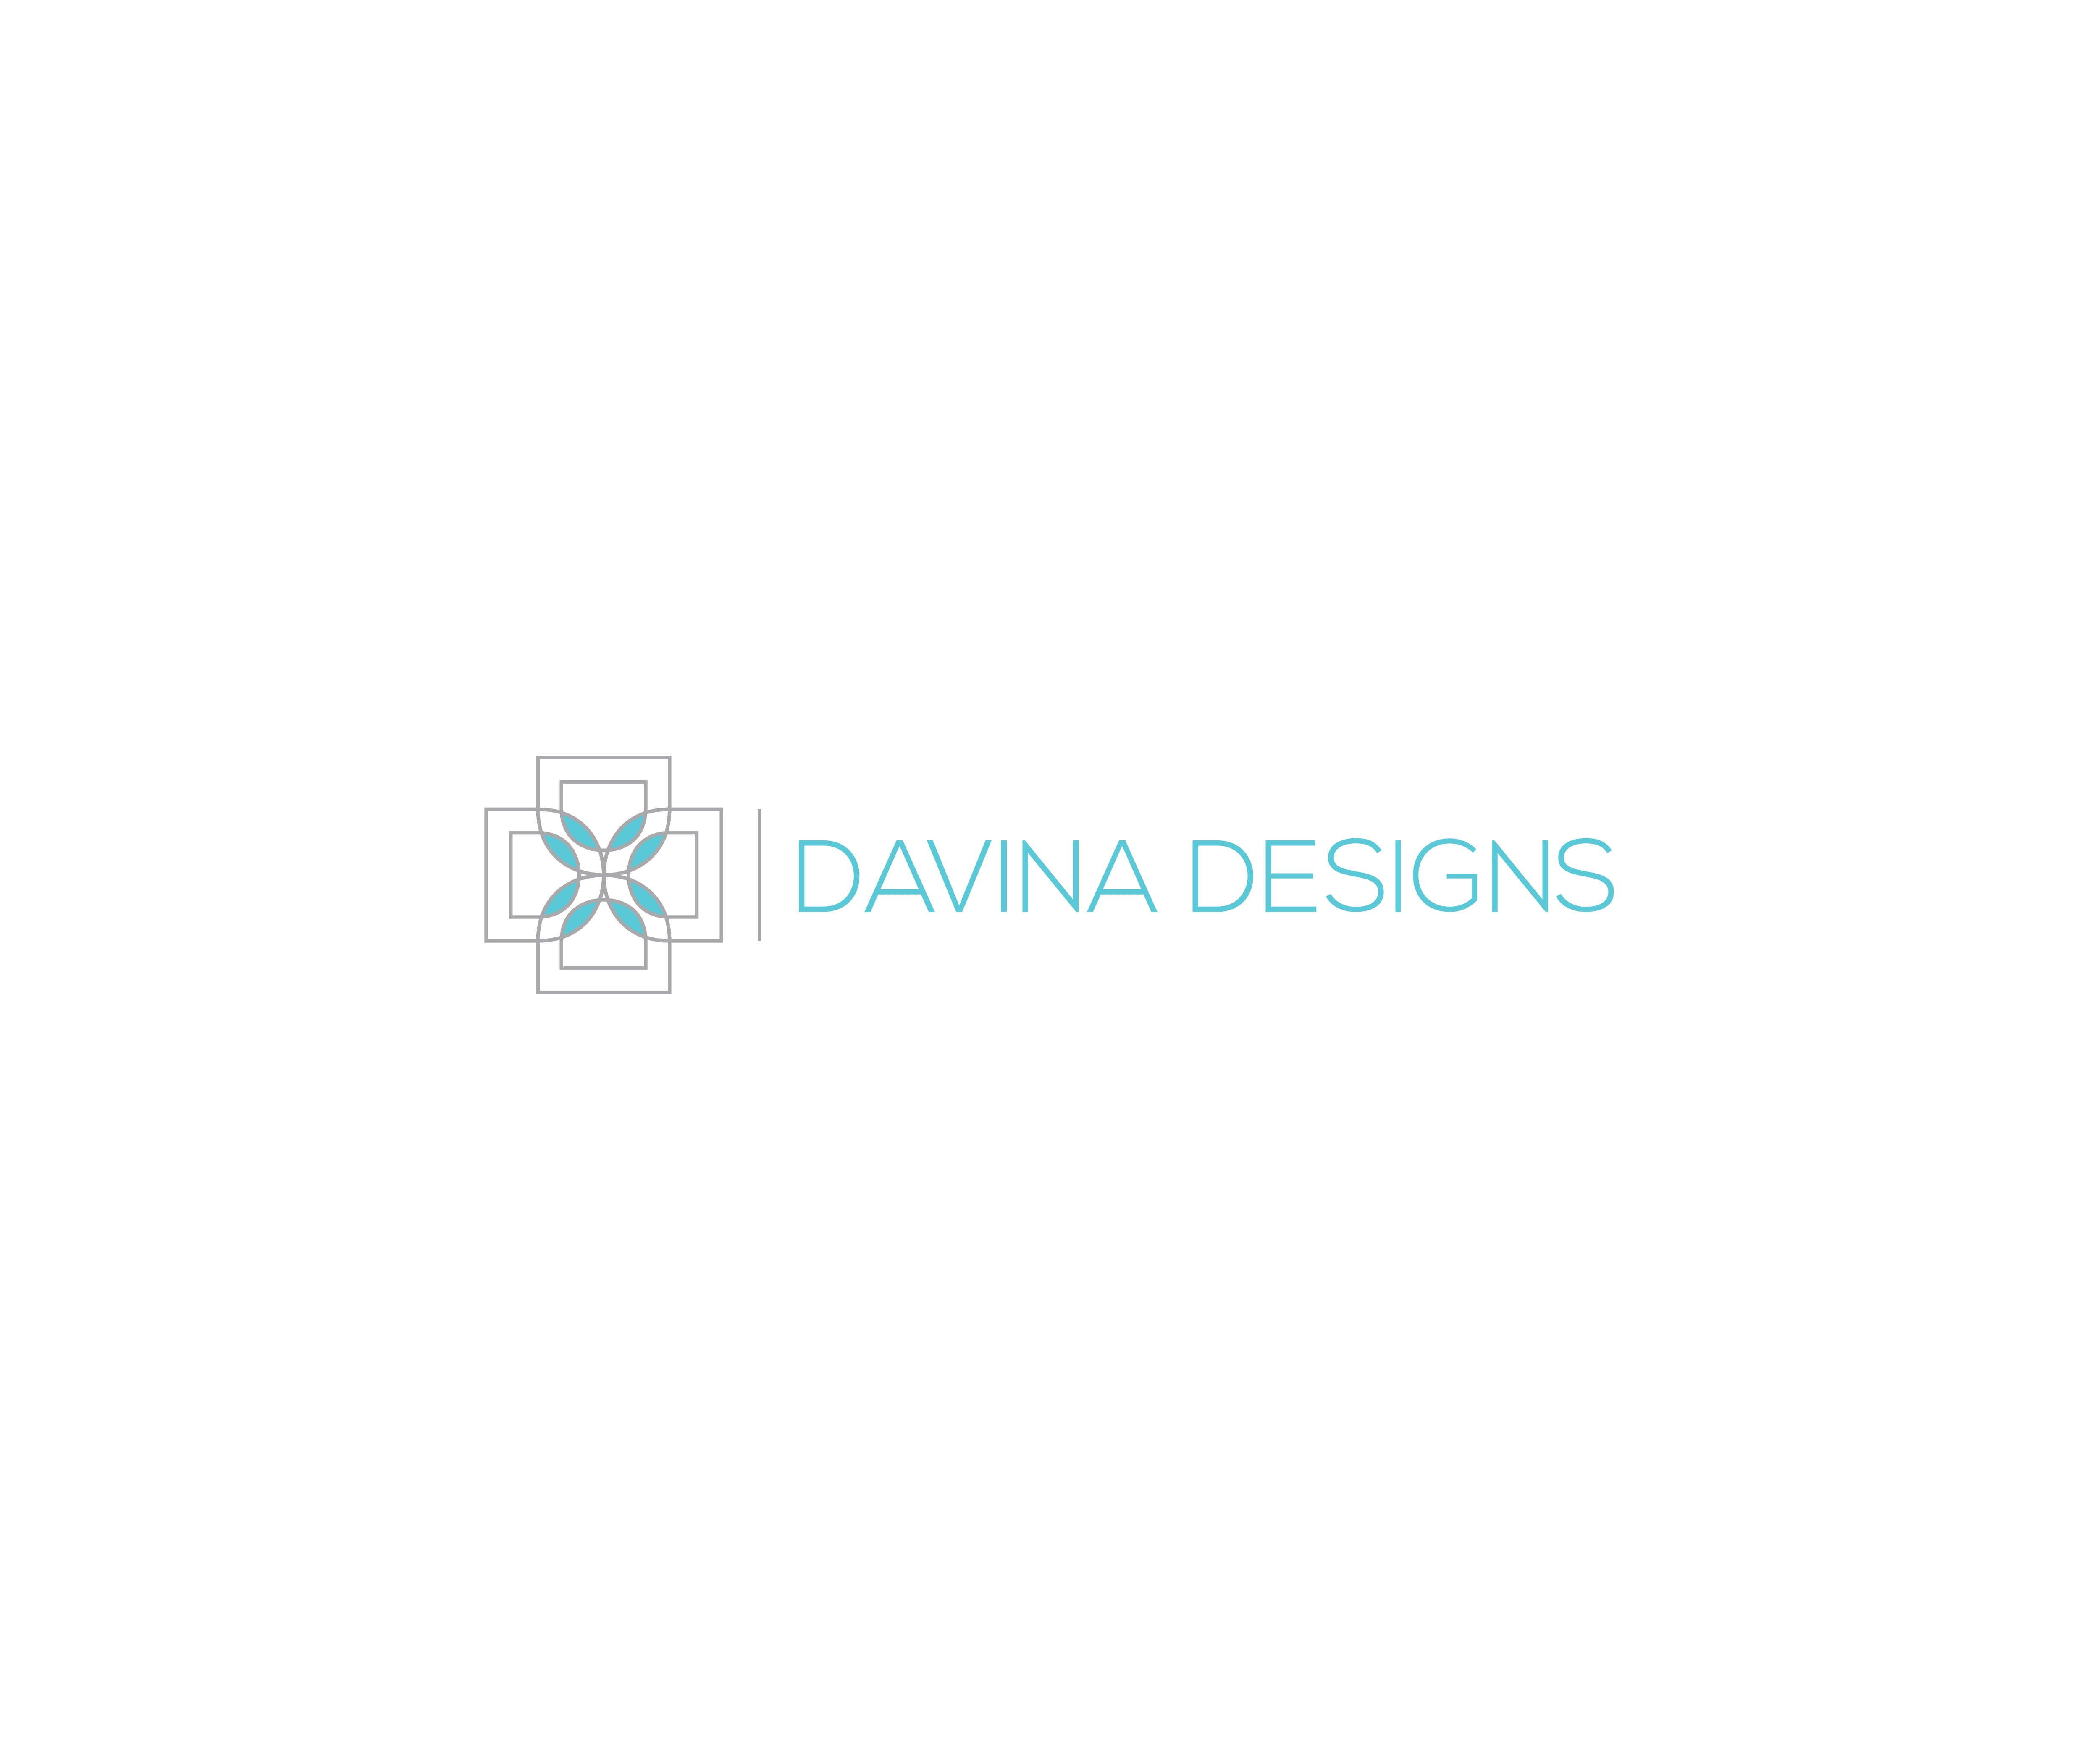 New Interior Designer looking for classy yet cutting edge logo to attract clients who hate beige